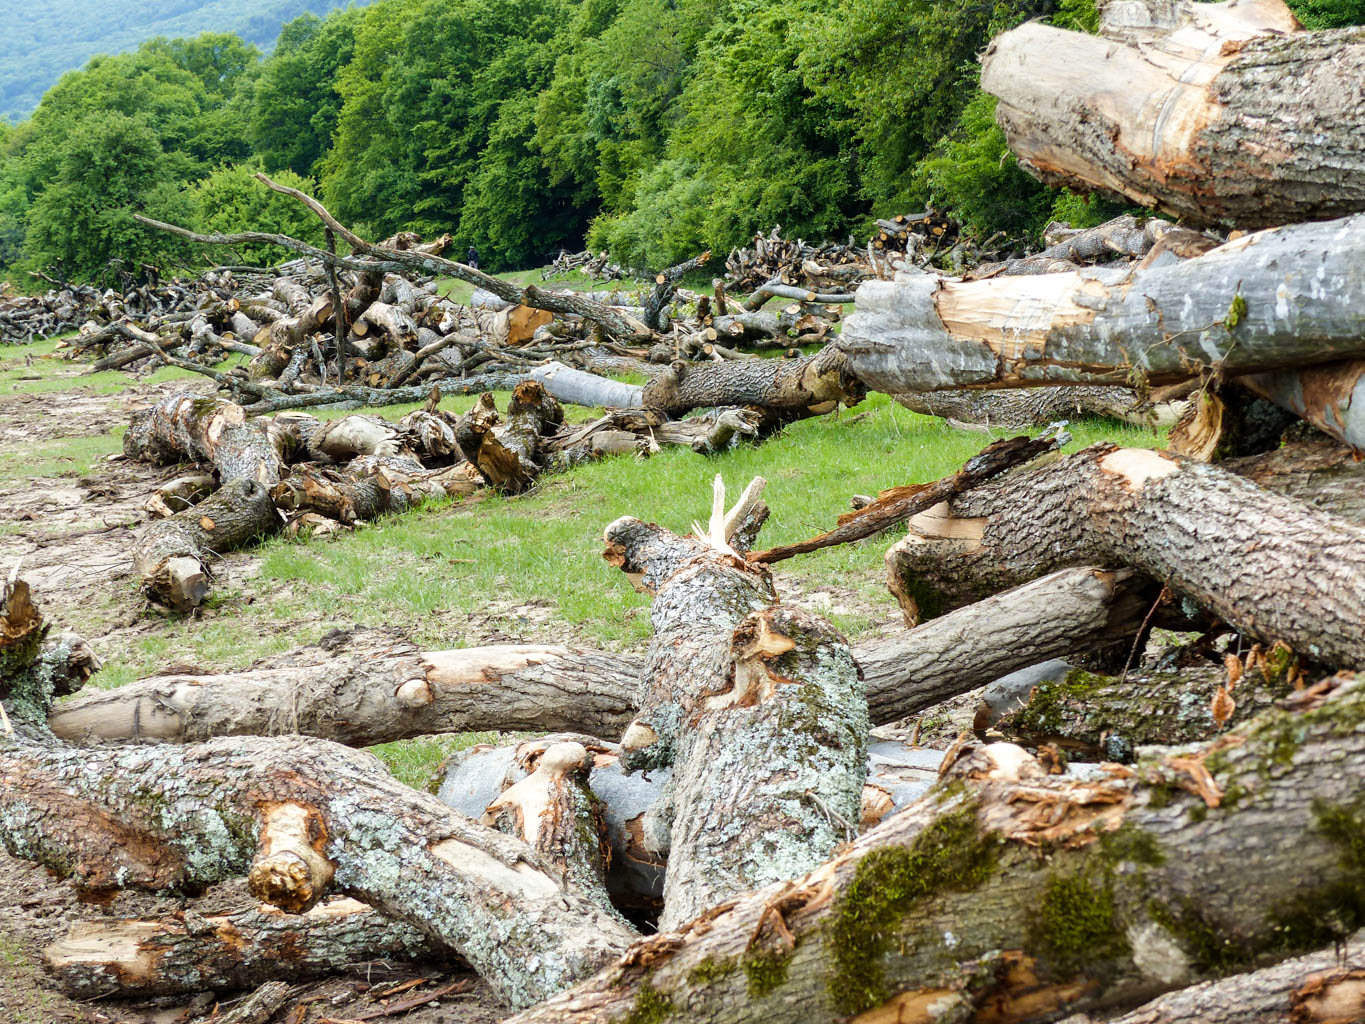 Deforestation Romania Hannes Knapp - © All rights reserved